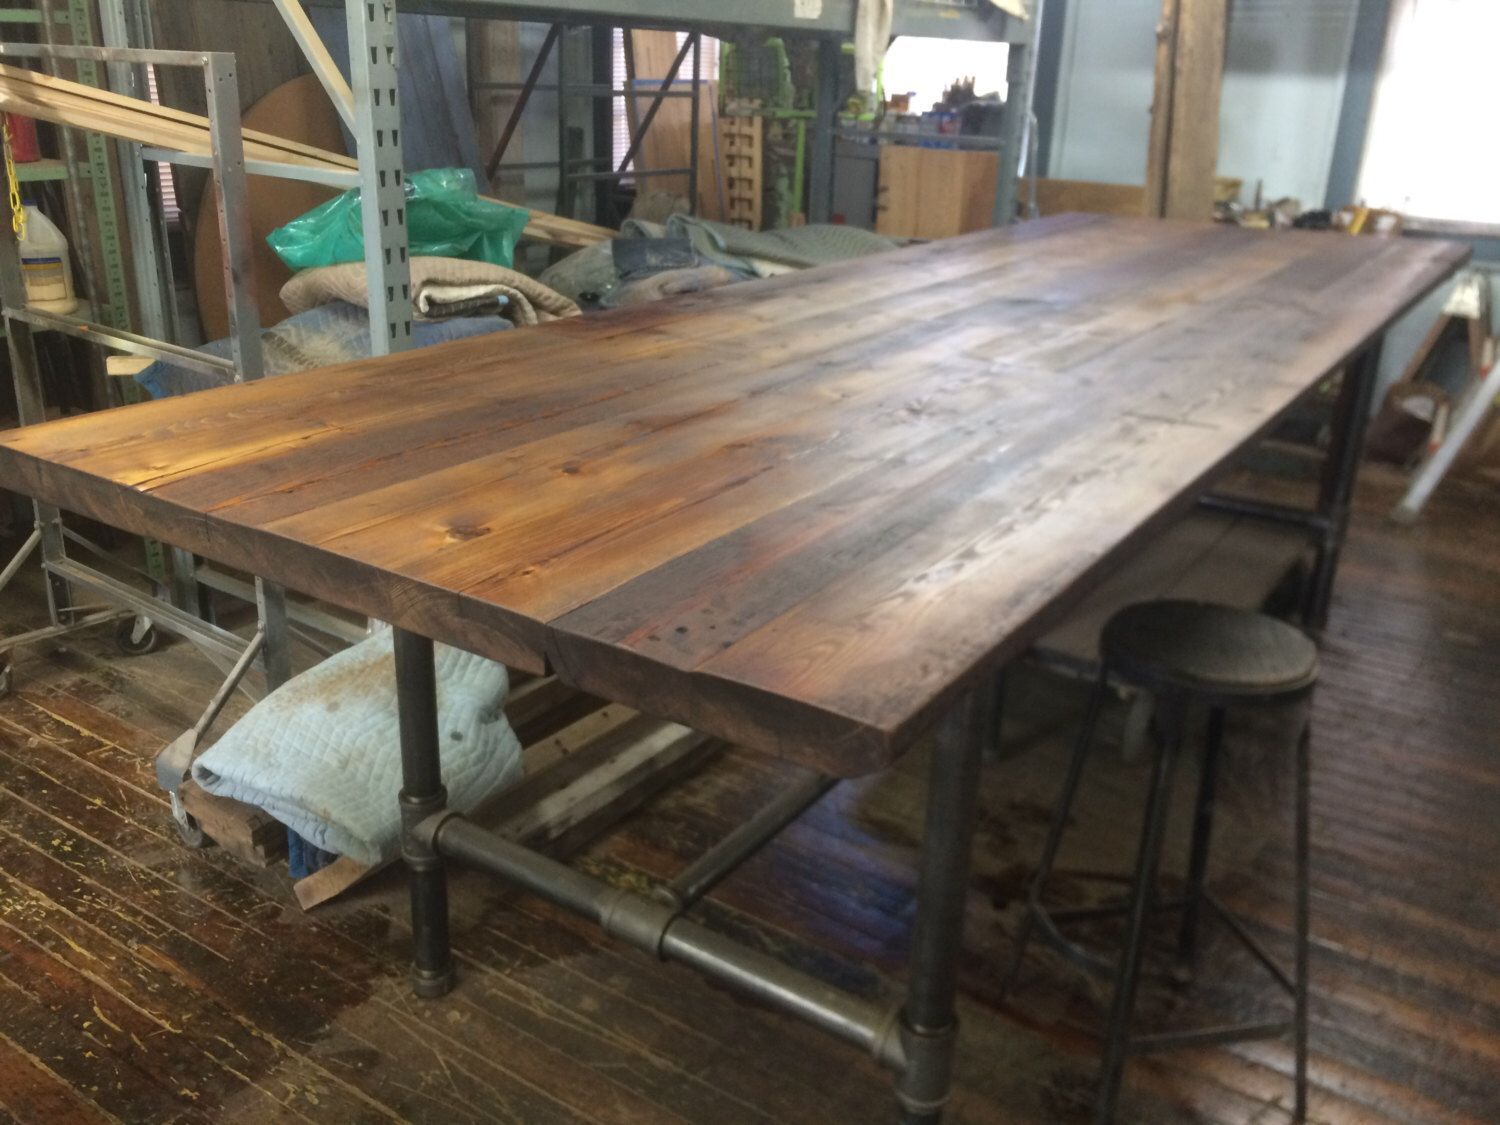 Table Reclaimed Wood Table Communal Dining Table Conference Table Rustic Modern 12 Foot Reclaimed Wood Table Top Rustic Conference Table Dining Table